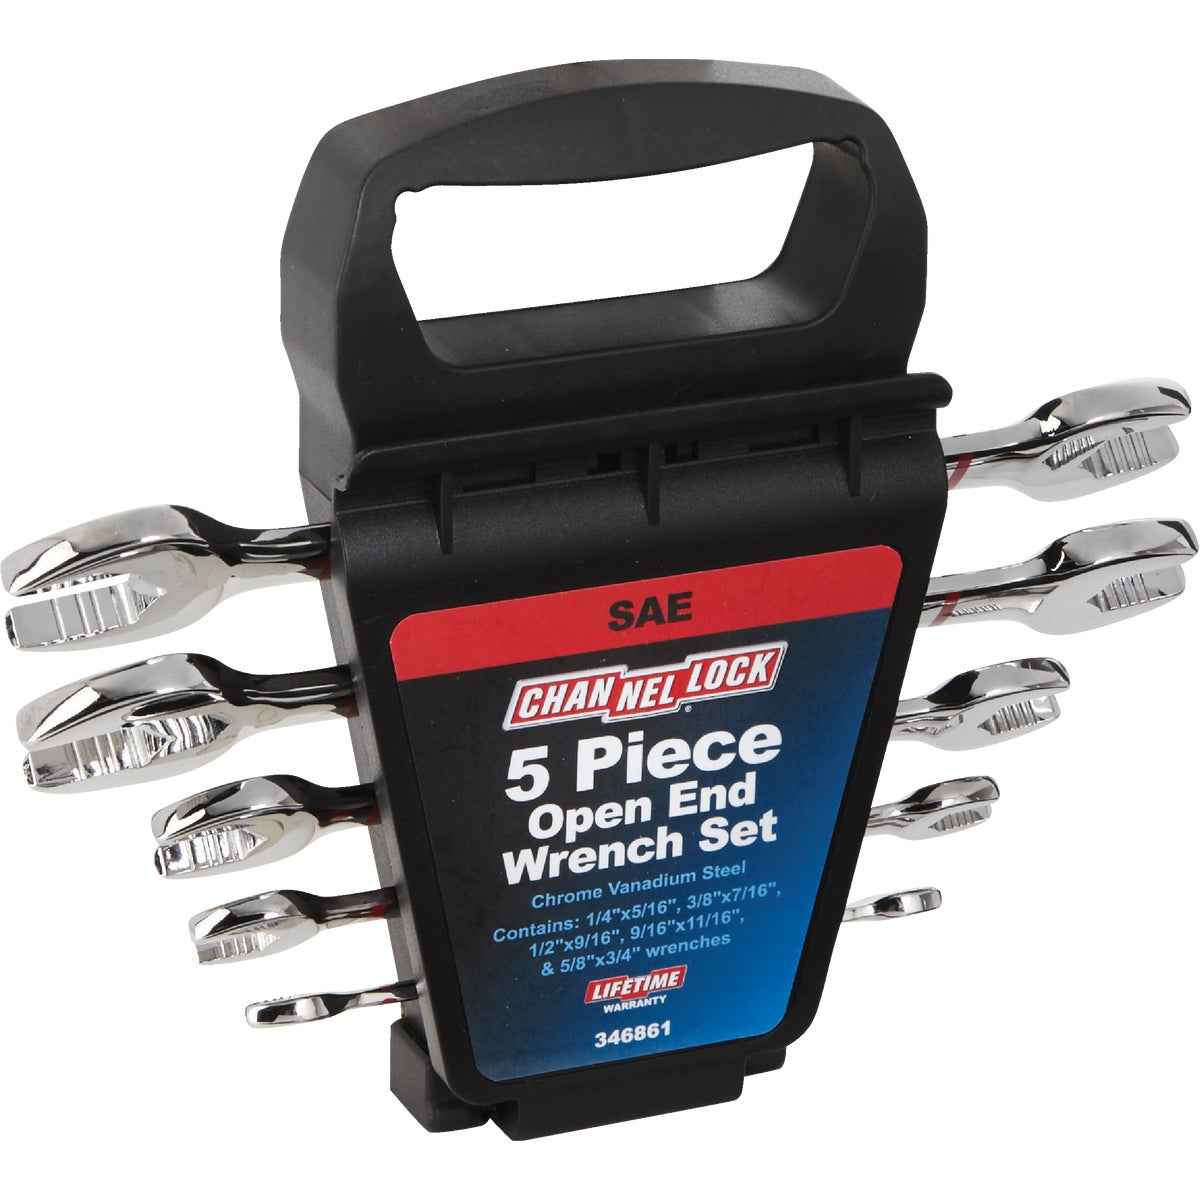 5PC OPEN END WRENCH SET - 346861 by Do it Best